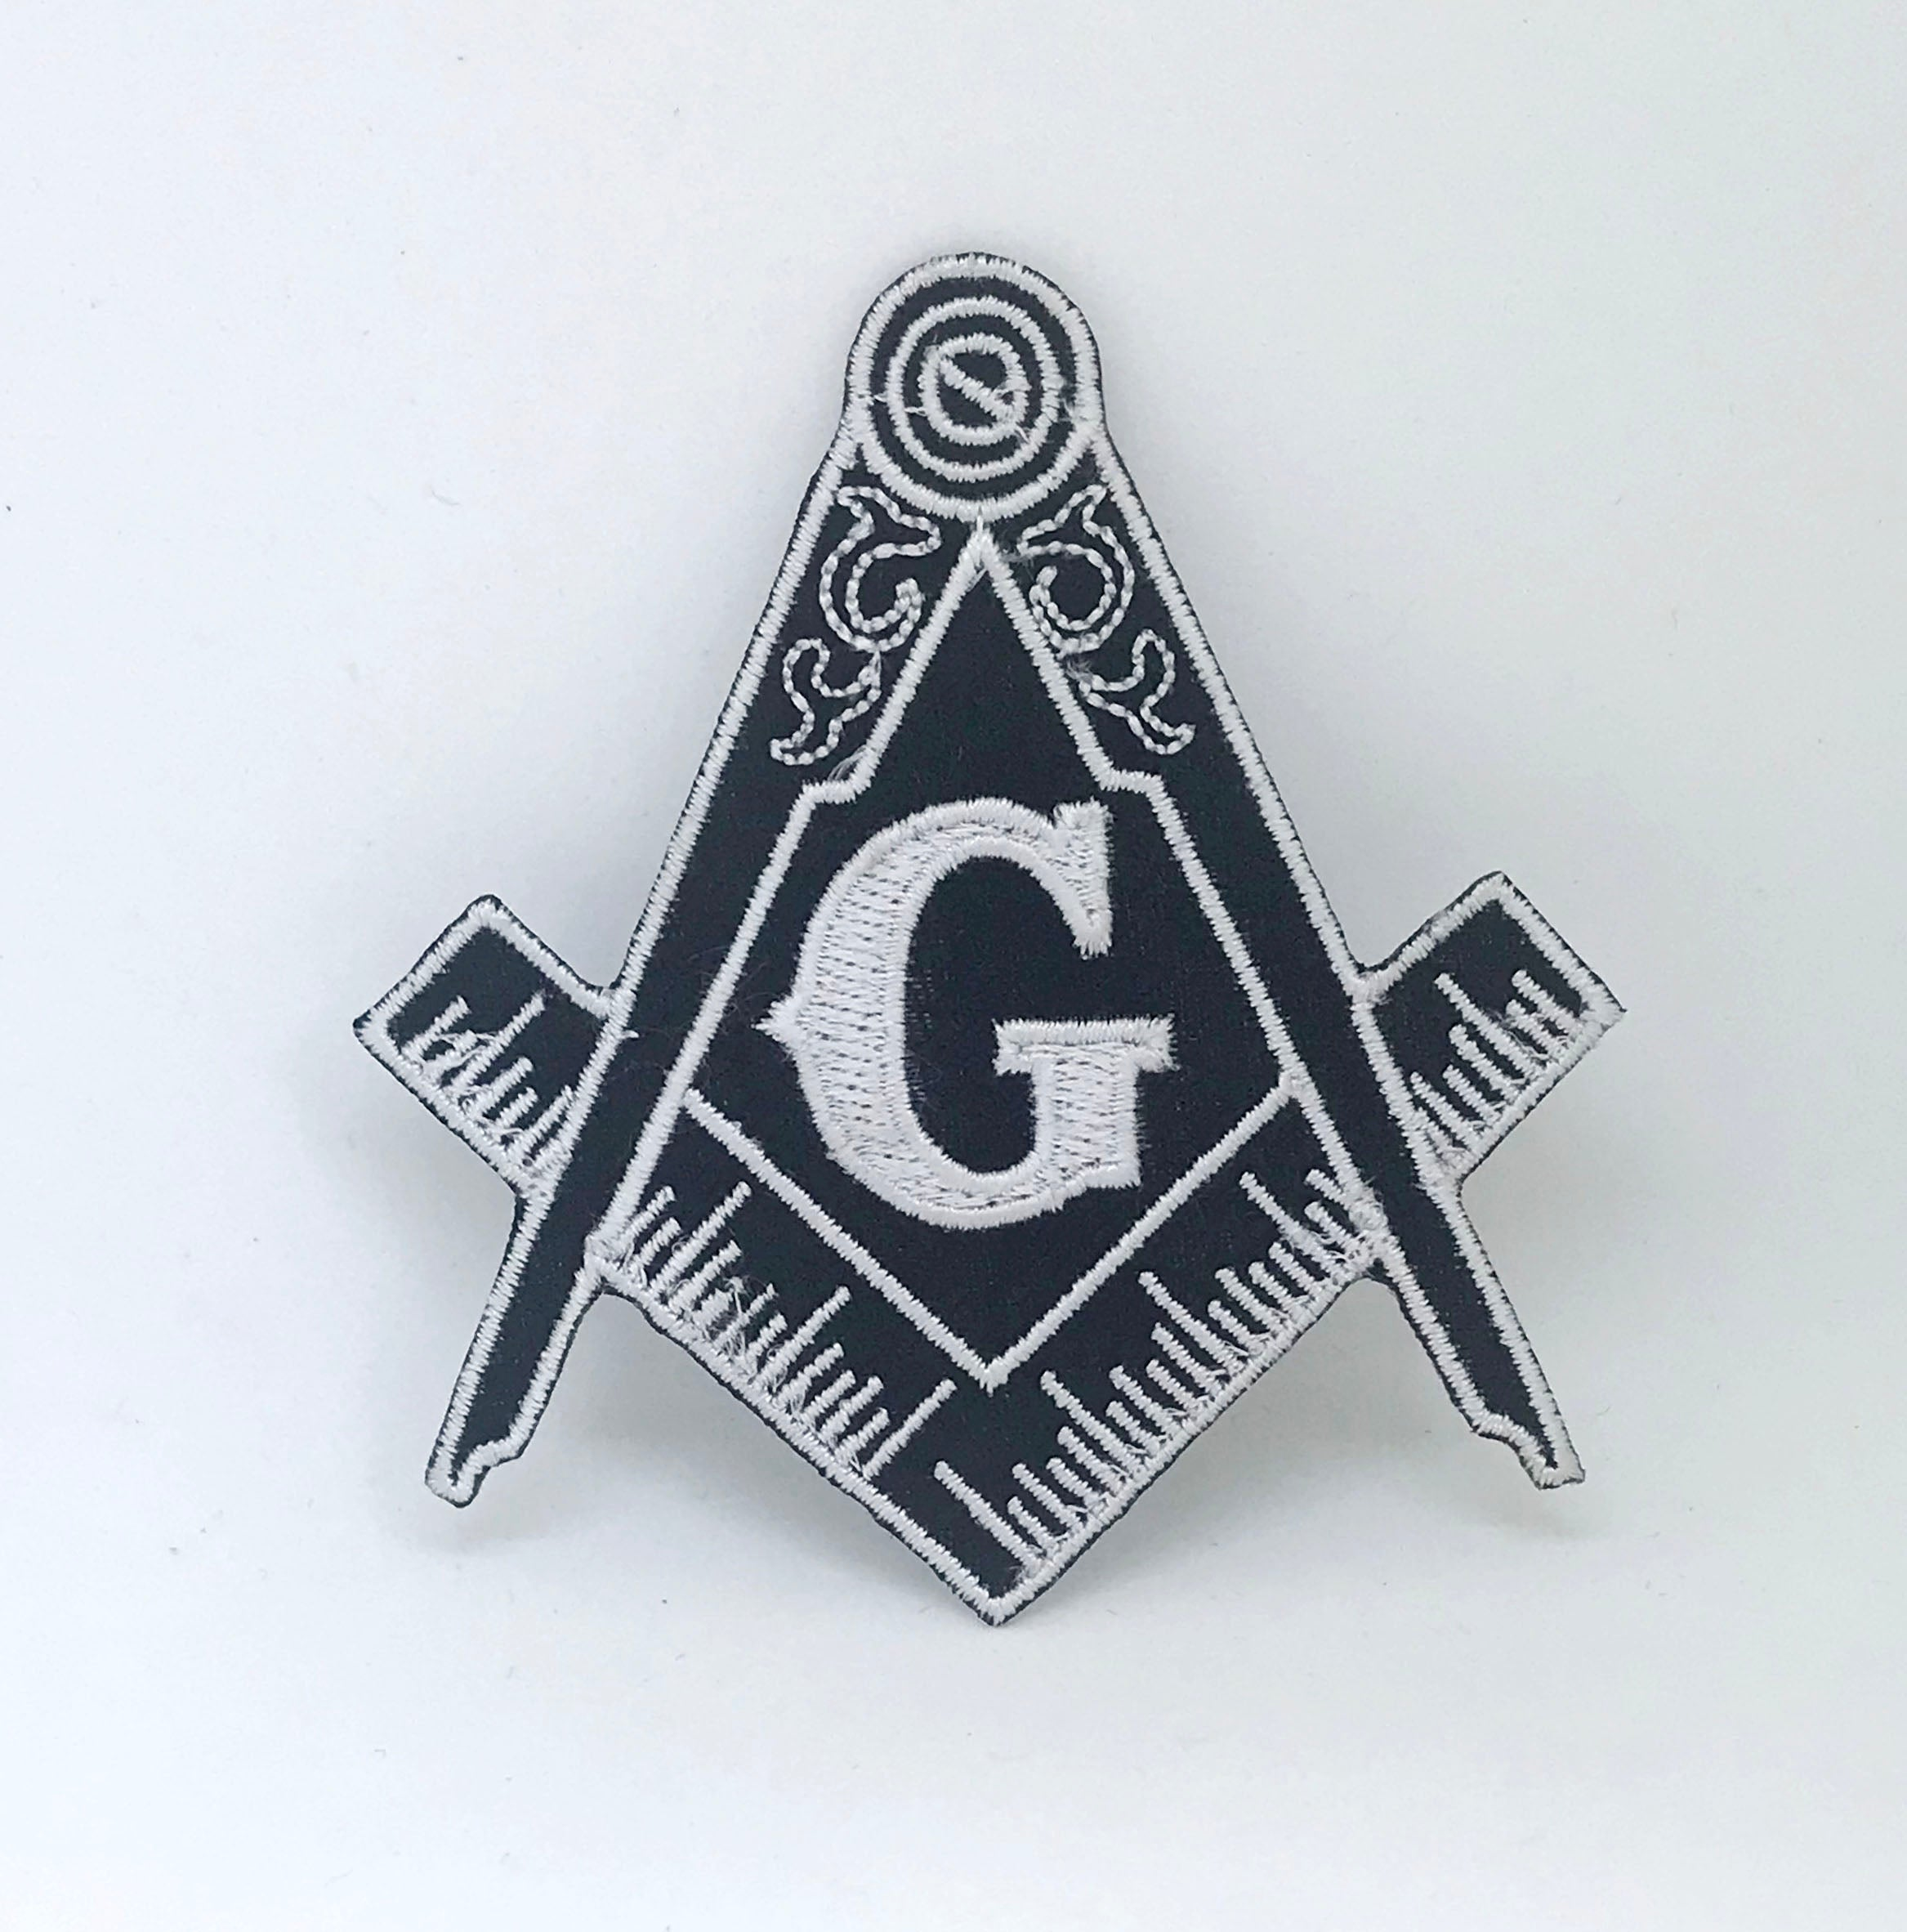 FREEMASON MASONIC Square & Compass Iron on Sew on Embroidered Patch